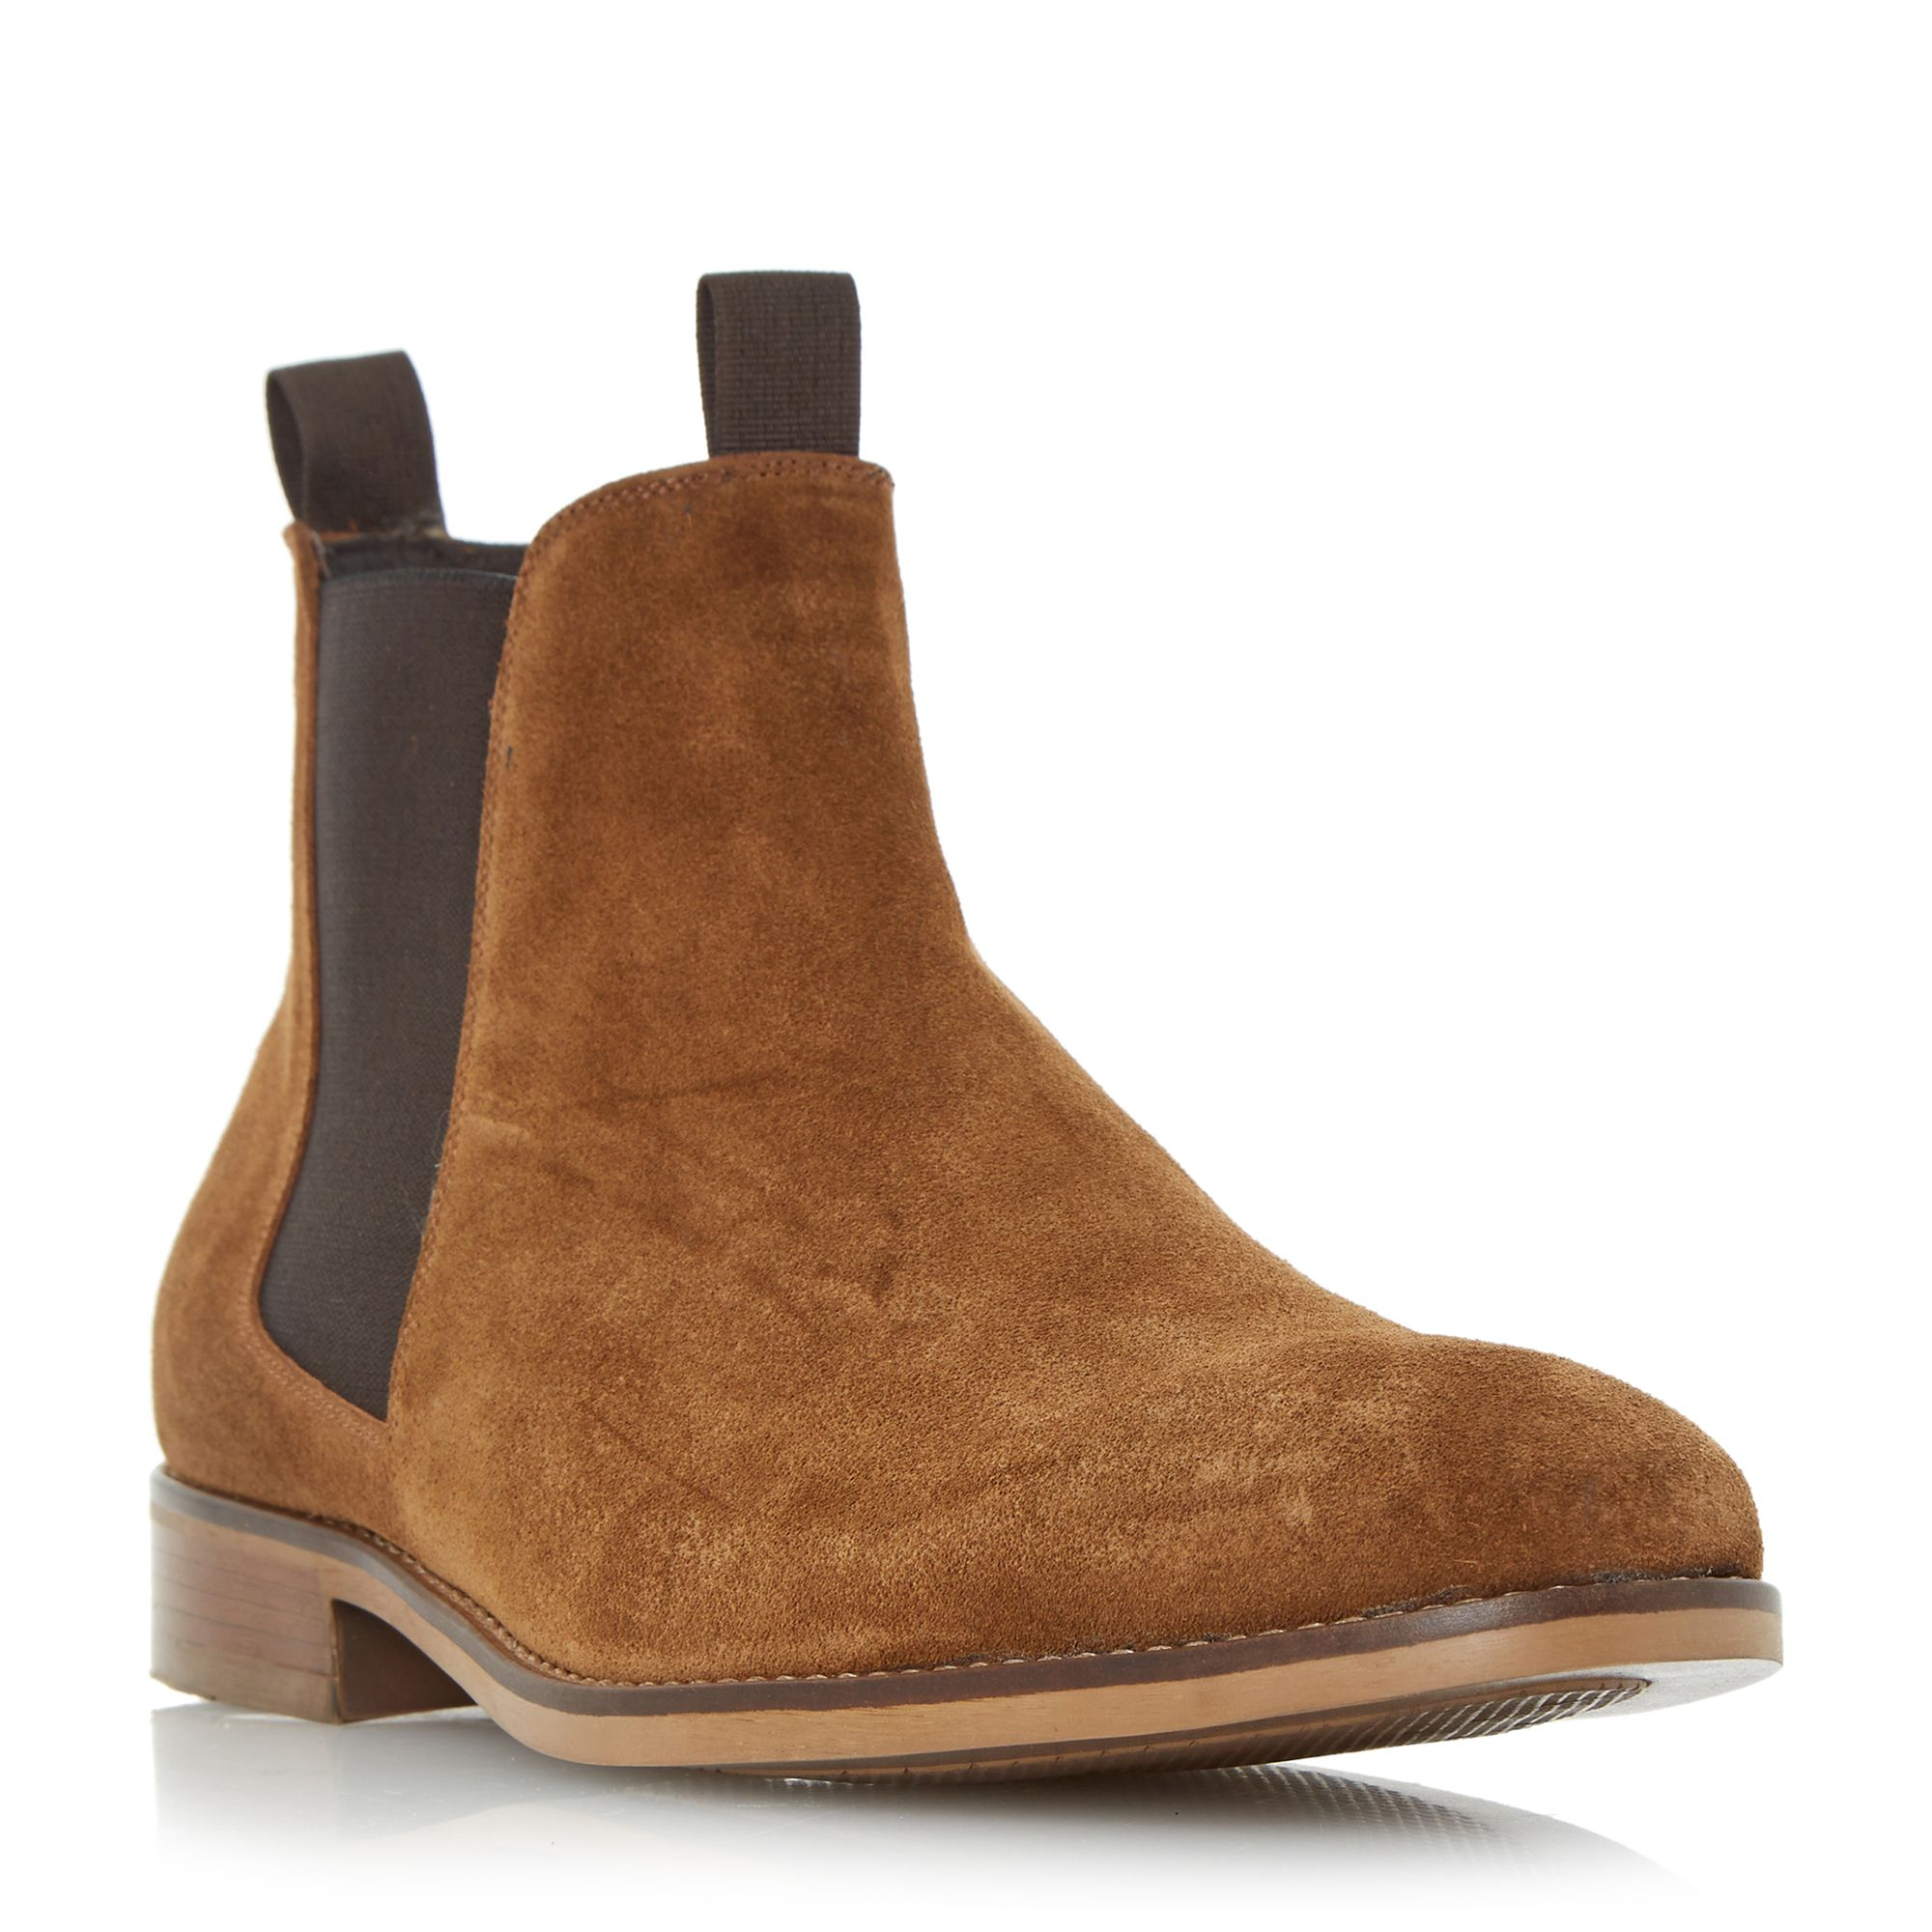 Bertie Cole double pull up tab chelsea boots Tan